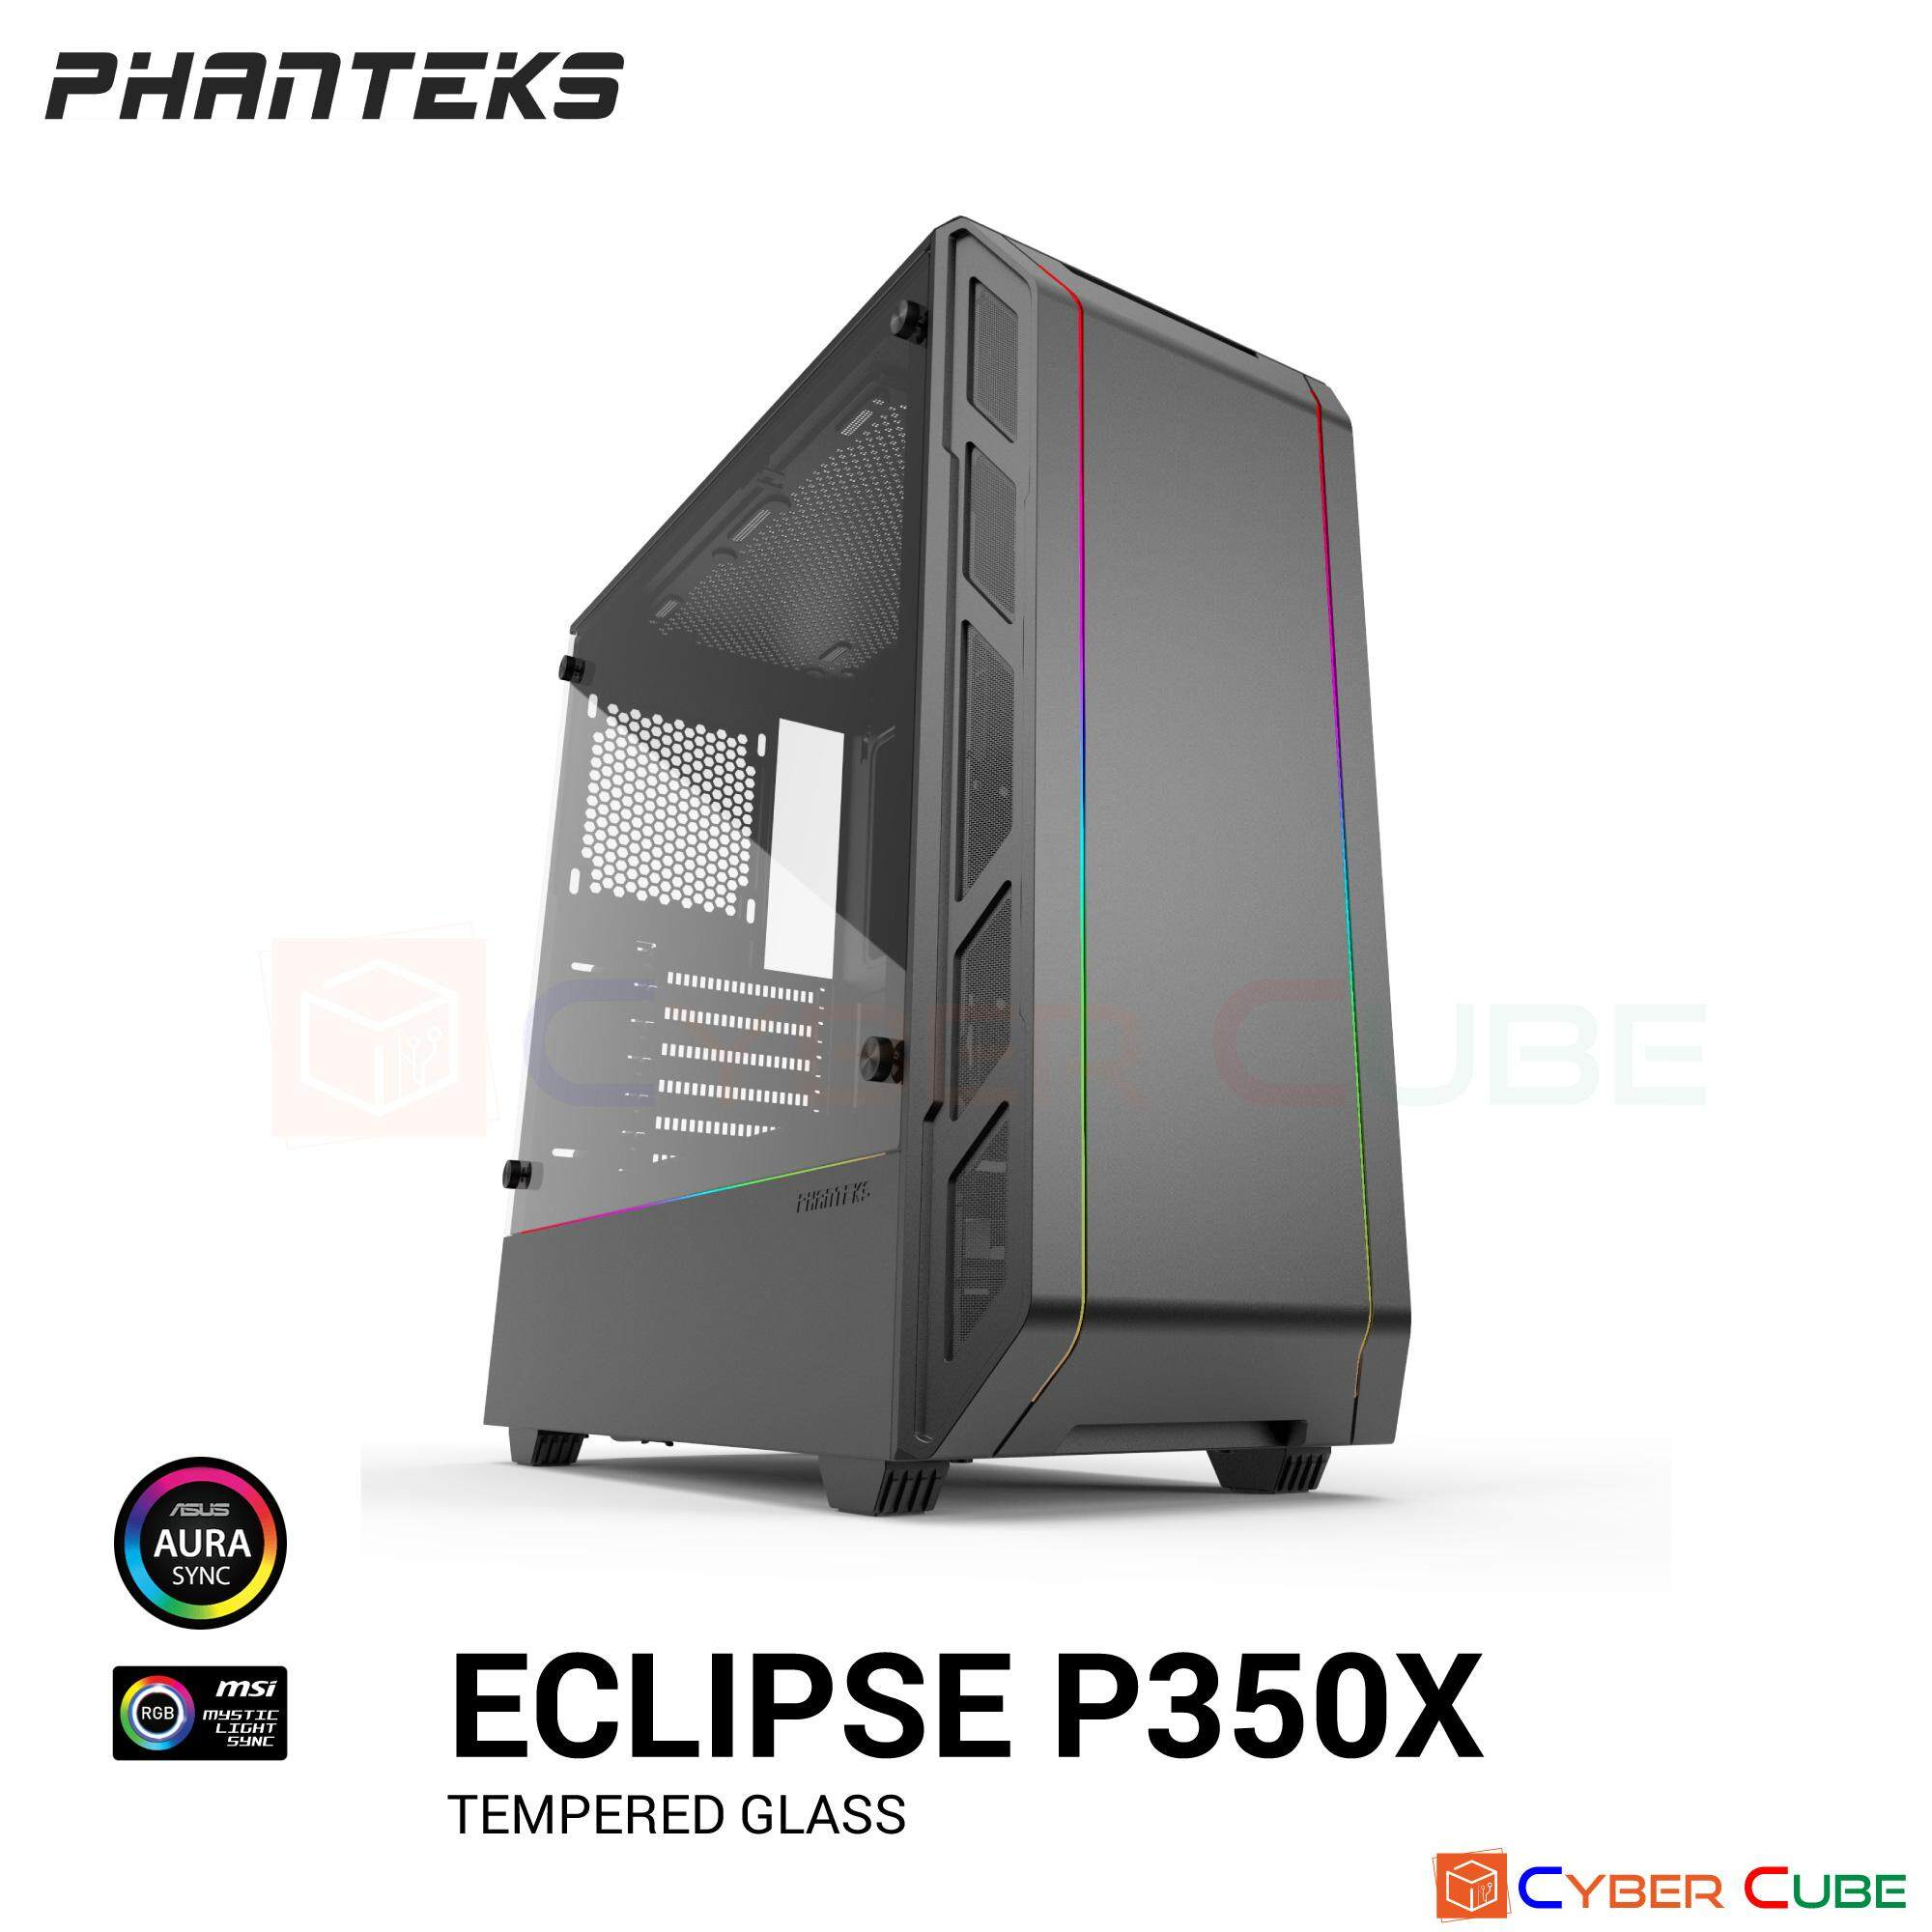 Phanteks Eclipse P350x Drgb Tempered Glass Case (เคส) - Black By Cybercube.